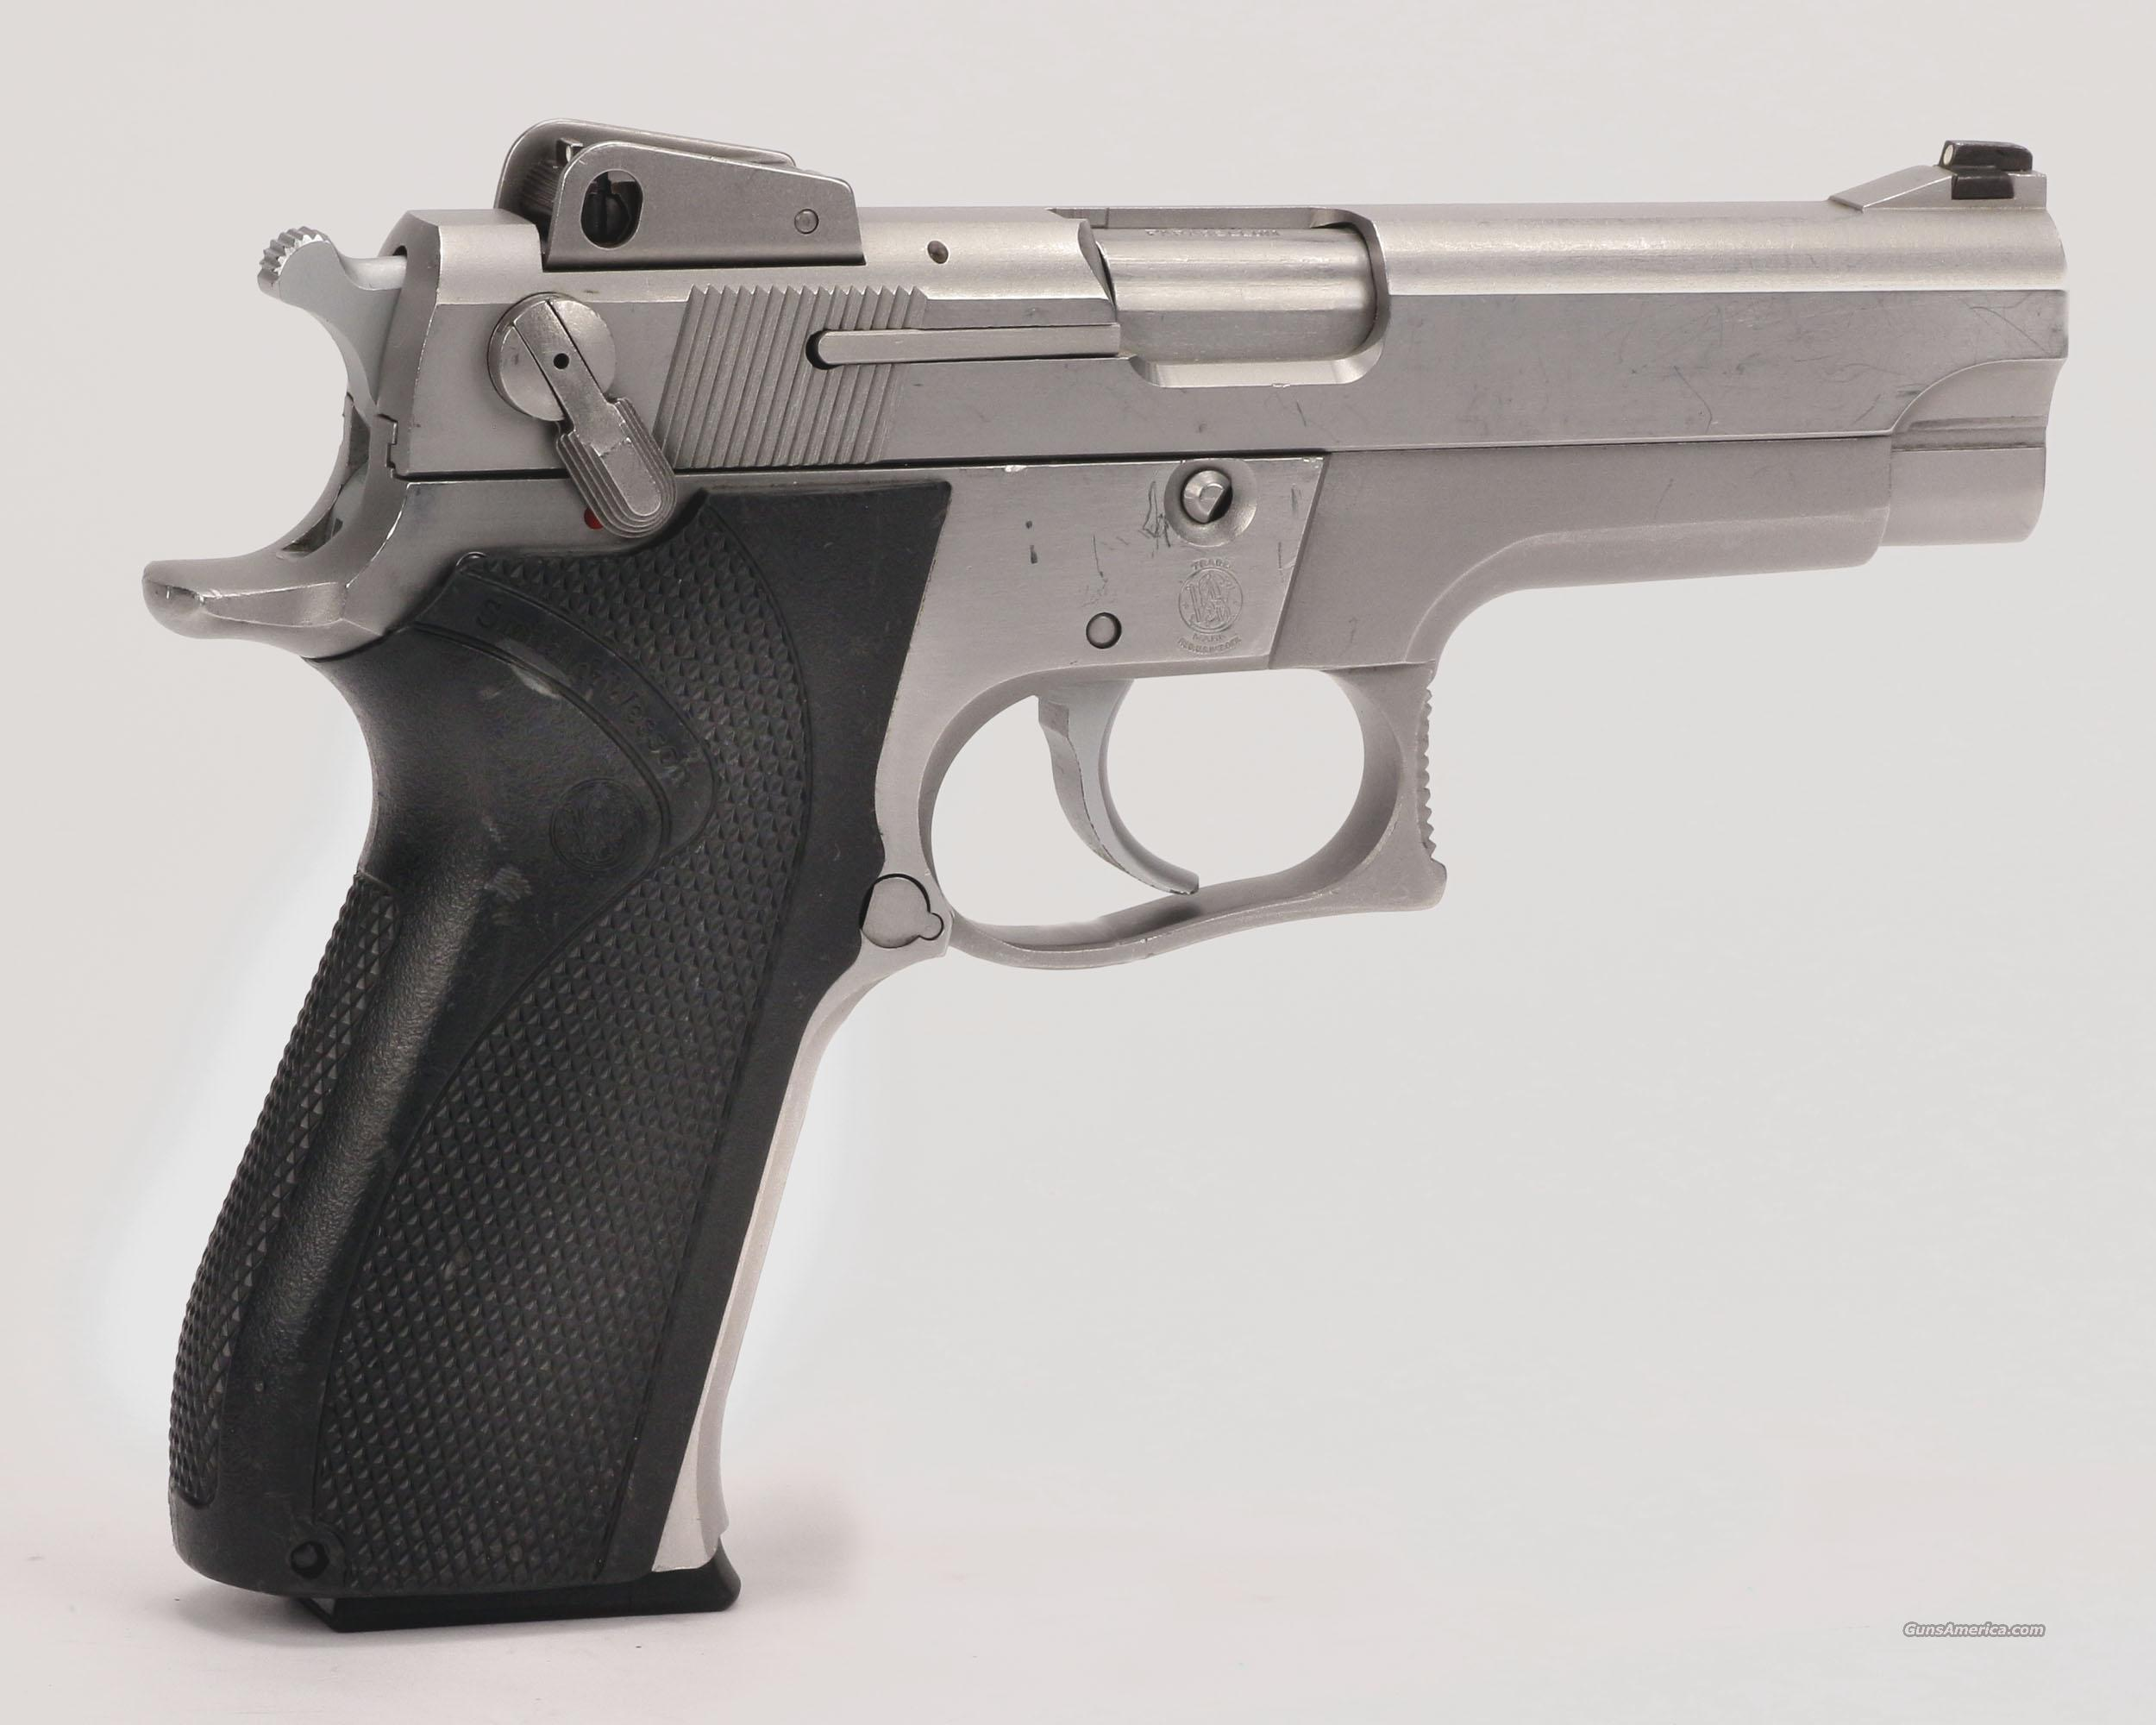 Smith &Wesson Model 5906 9mm  Guns > Pistols > Smith & Wesson Pistols - Autos > Steel Frame